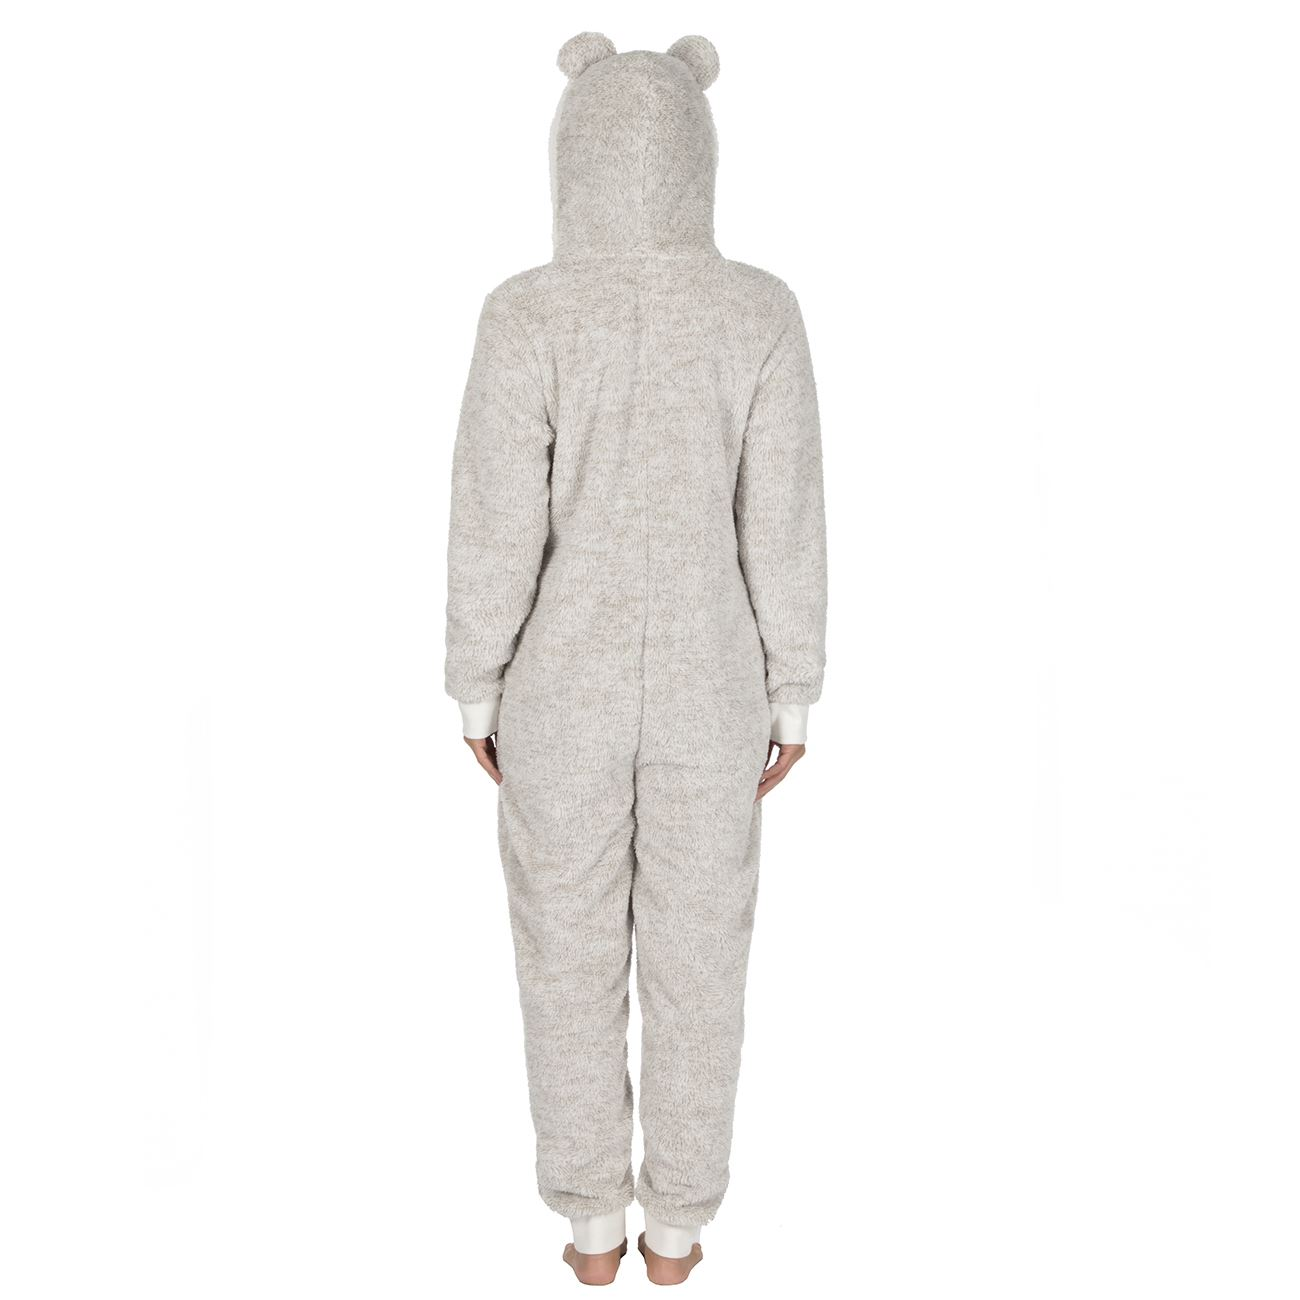 Ladies-Womens-Girls-Fleece-All-In-One-Pyjamas-Outfit-Jumpsuit-Costume-Size-6-18 thumbnail 37